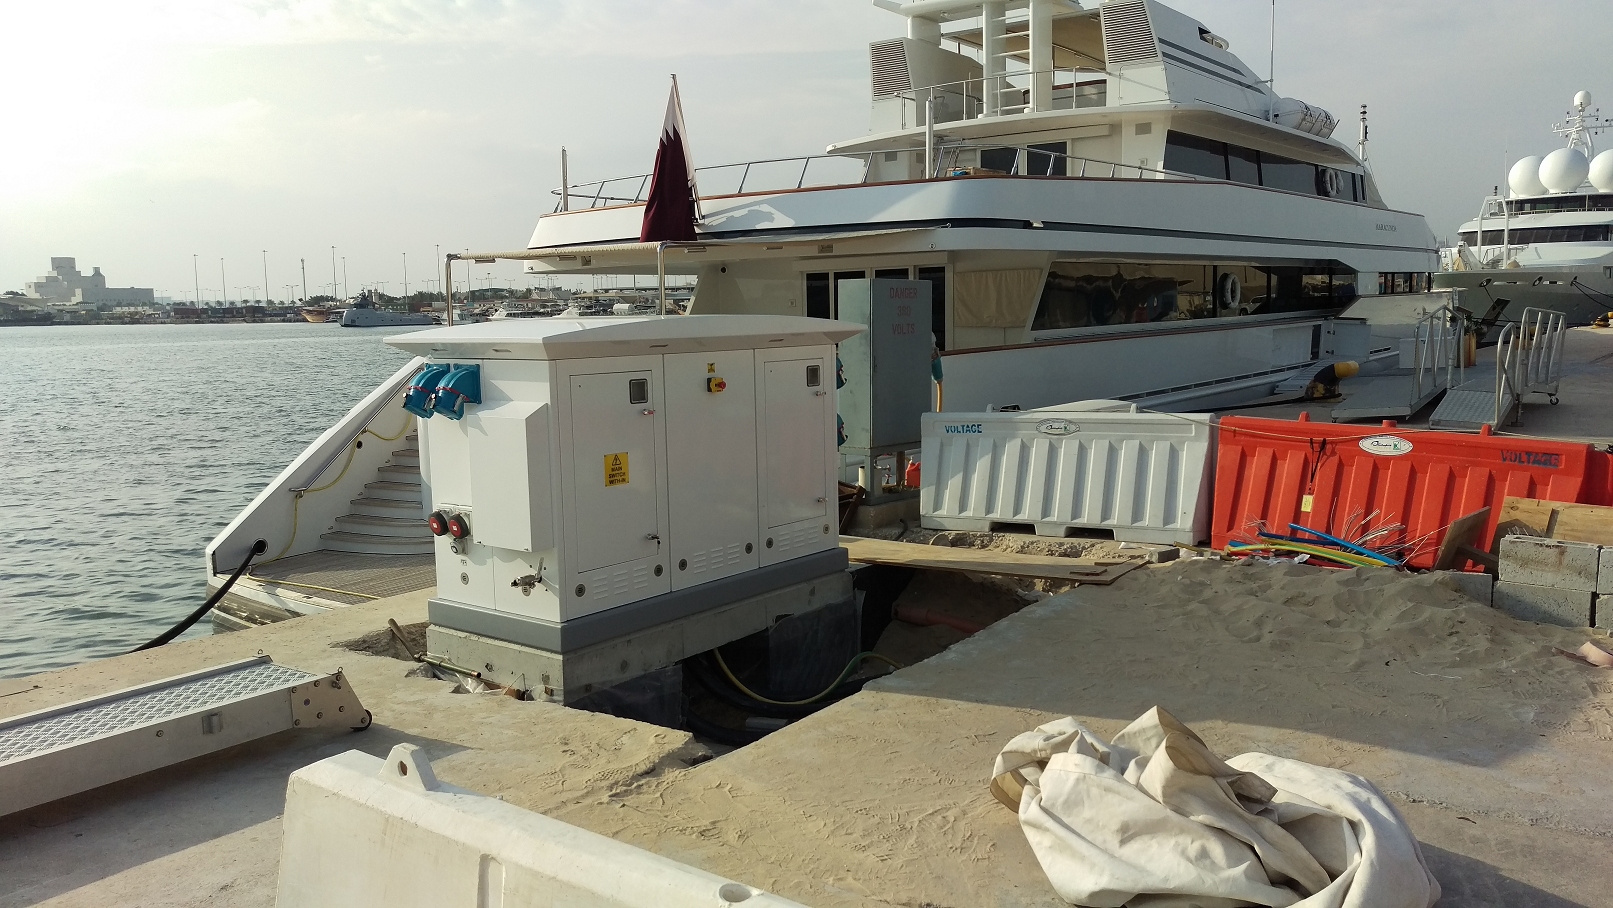 MARINA SUPERYACHT PEDESTALS FITTED WITH SAFETY SOCKETS